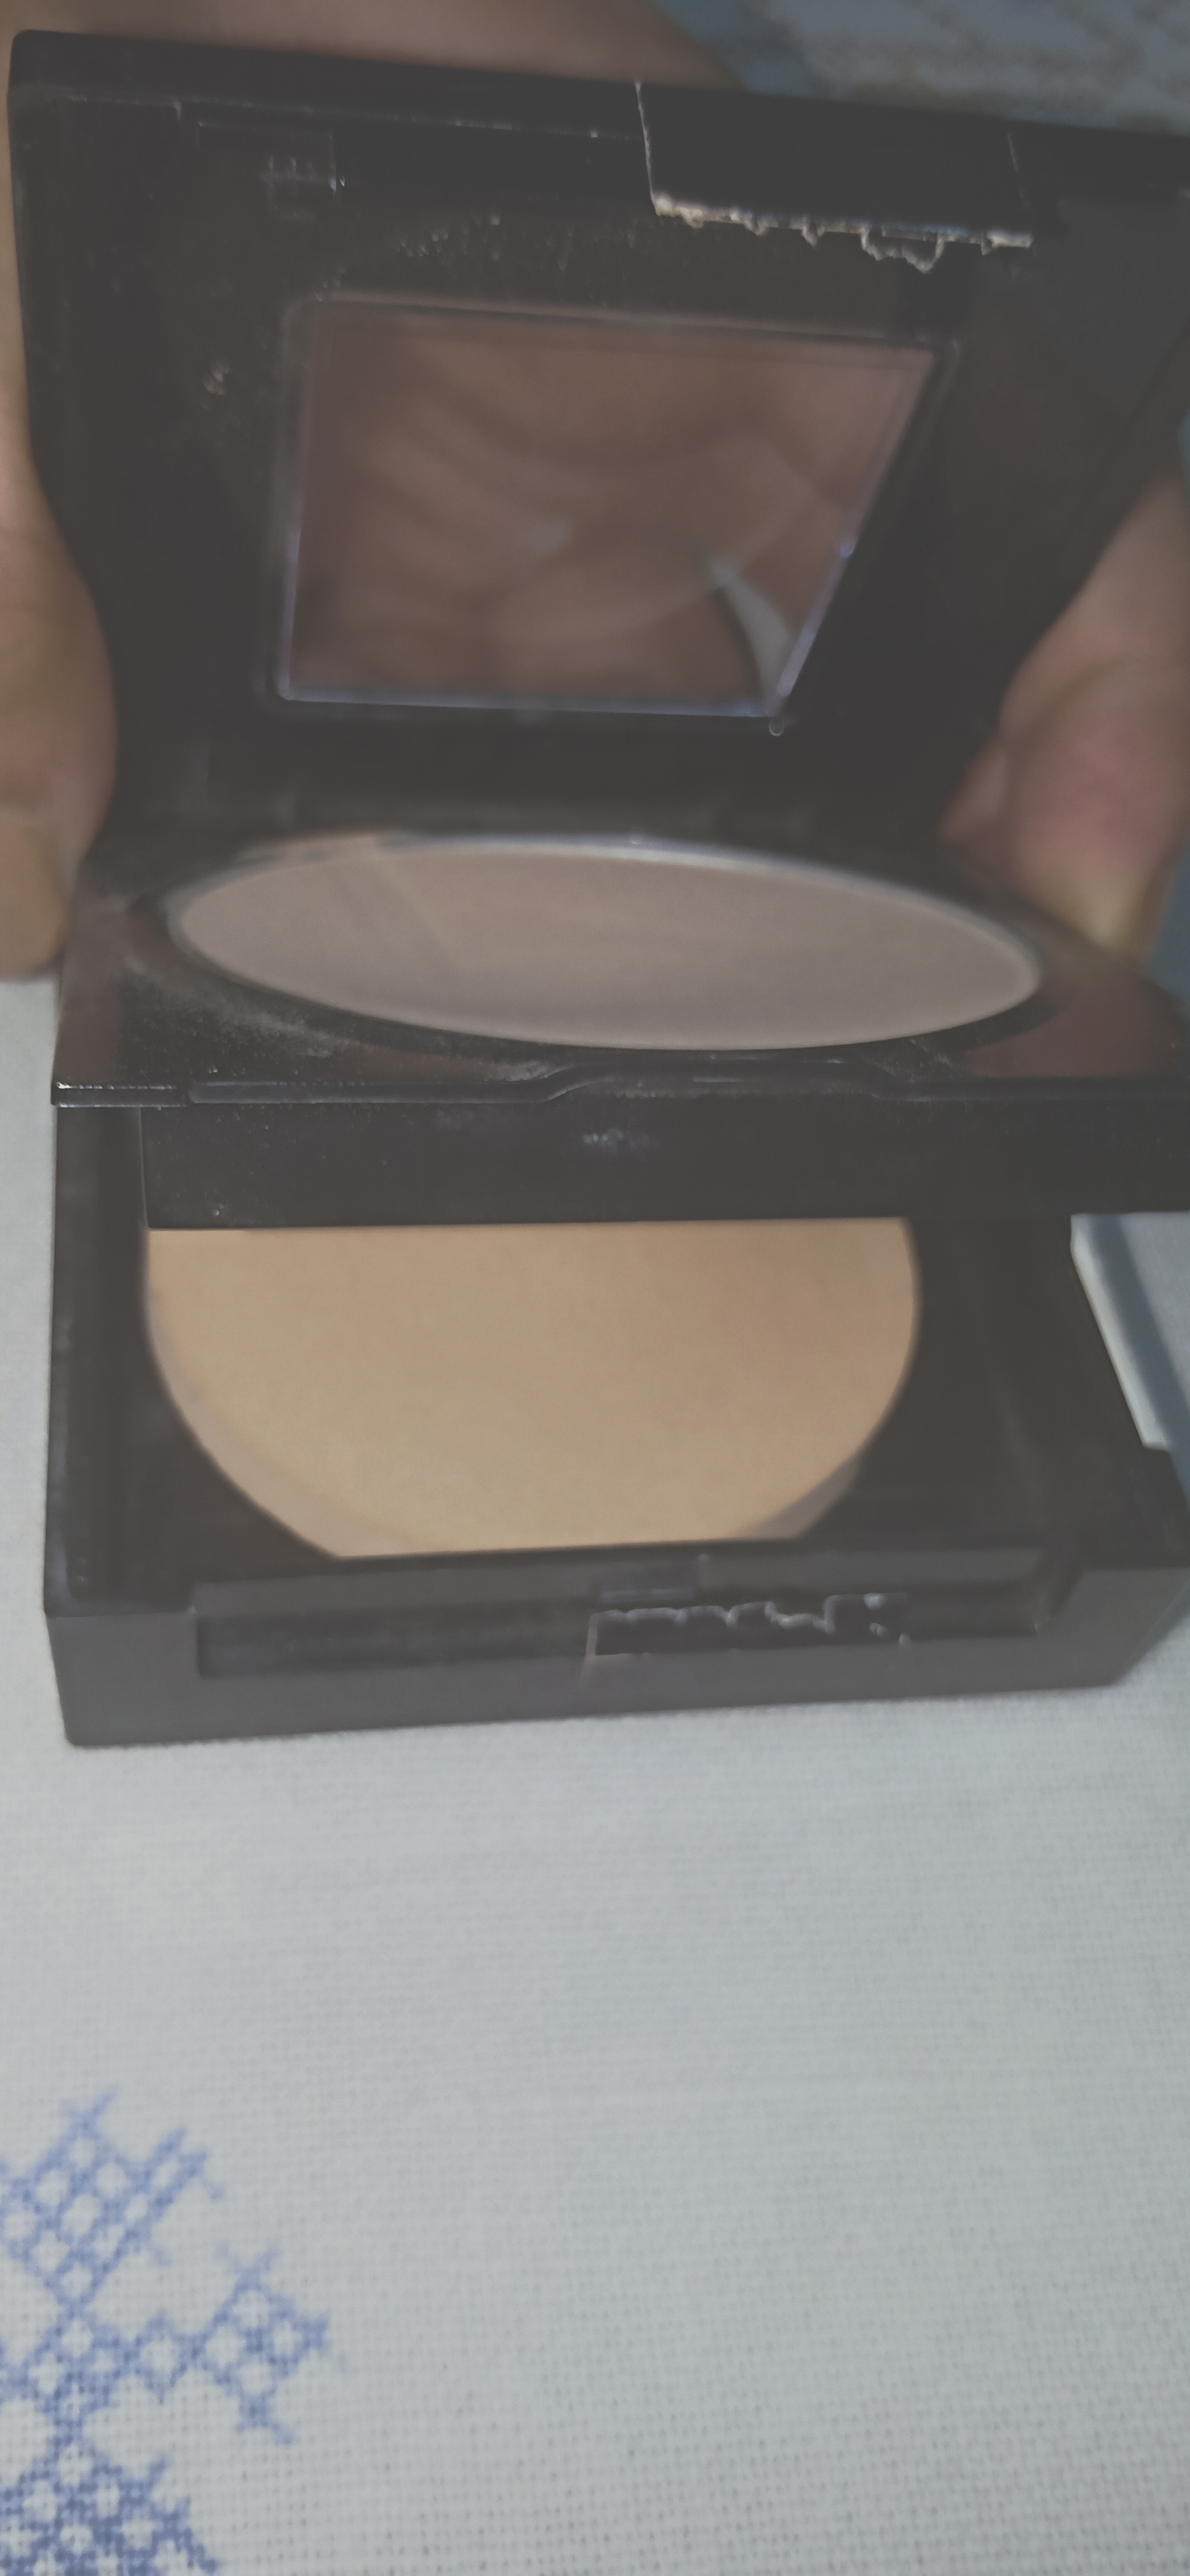 Maybelline Fit Me Matte And Poreless Powder pic 5-Good for oily skin-By nadia_ehtesham